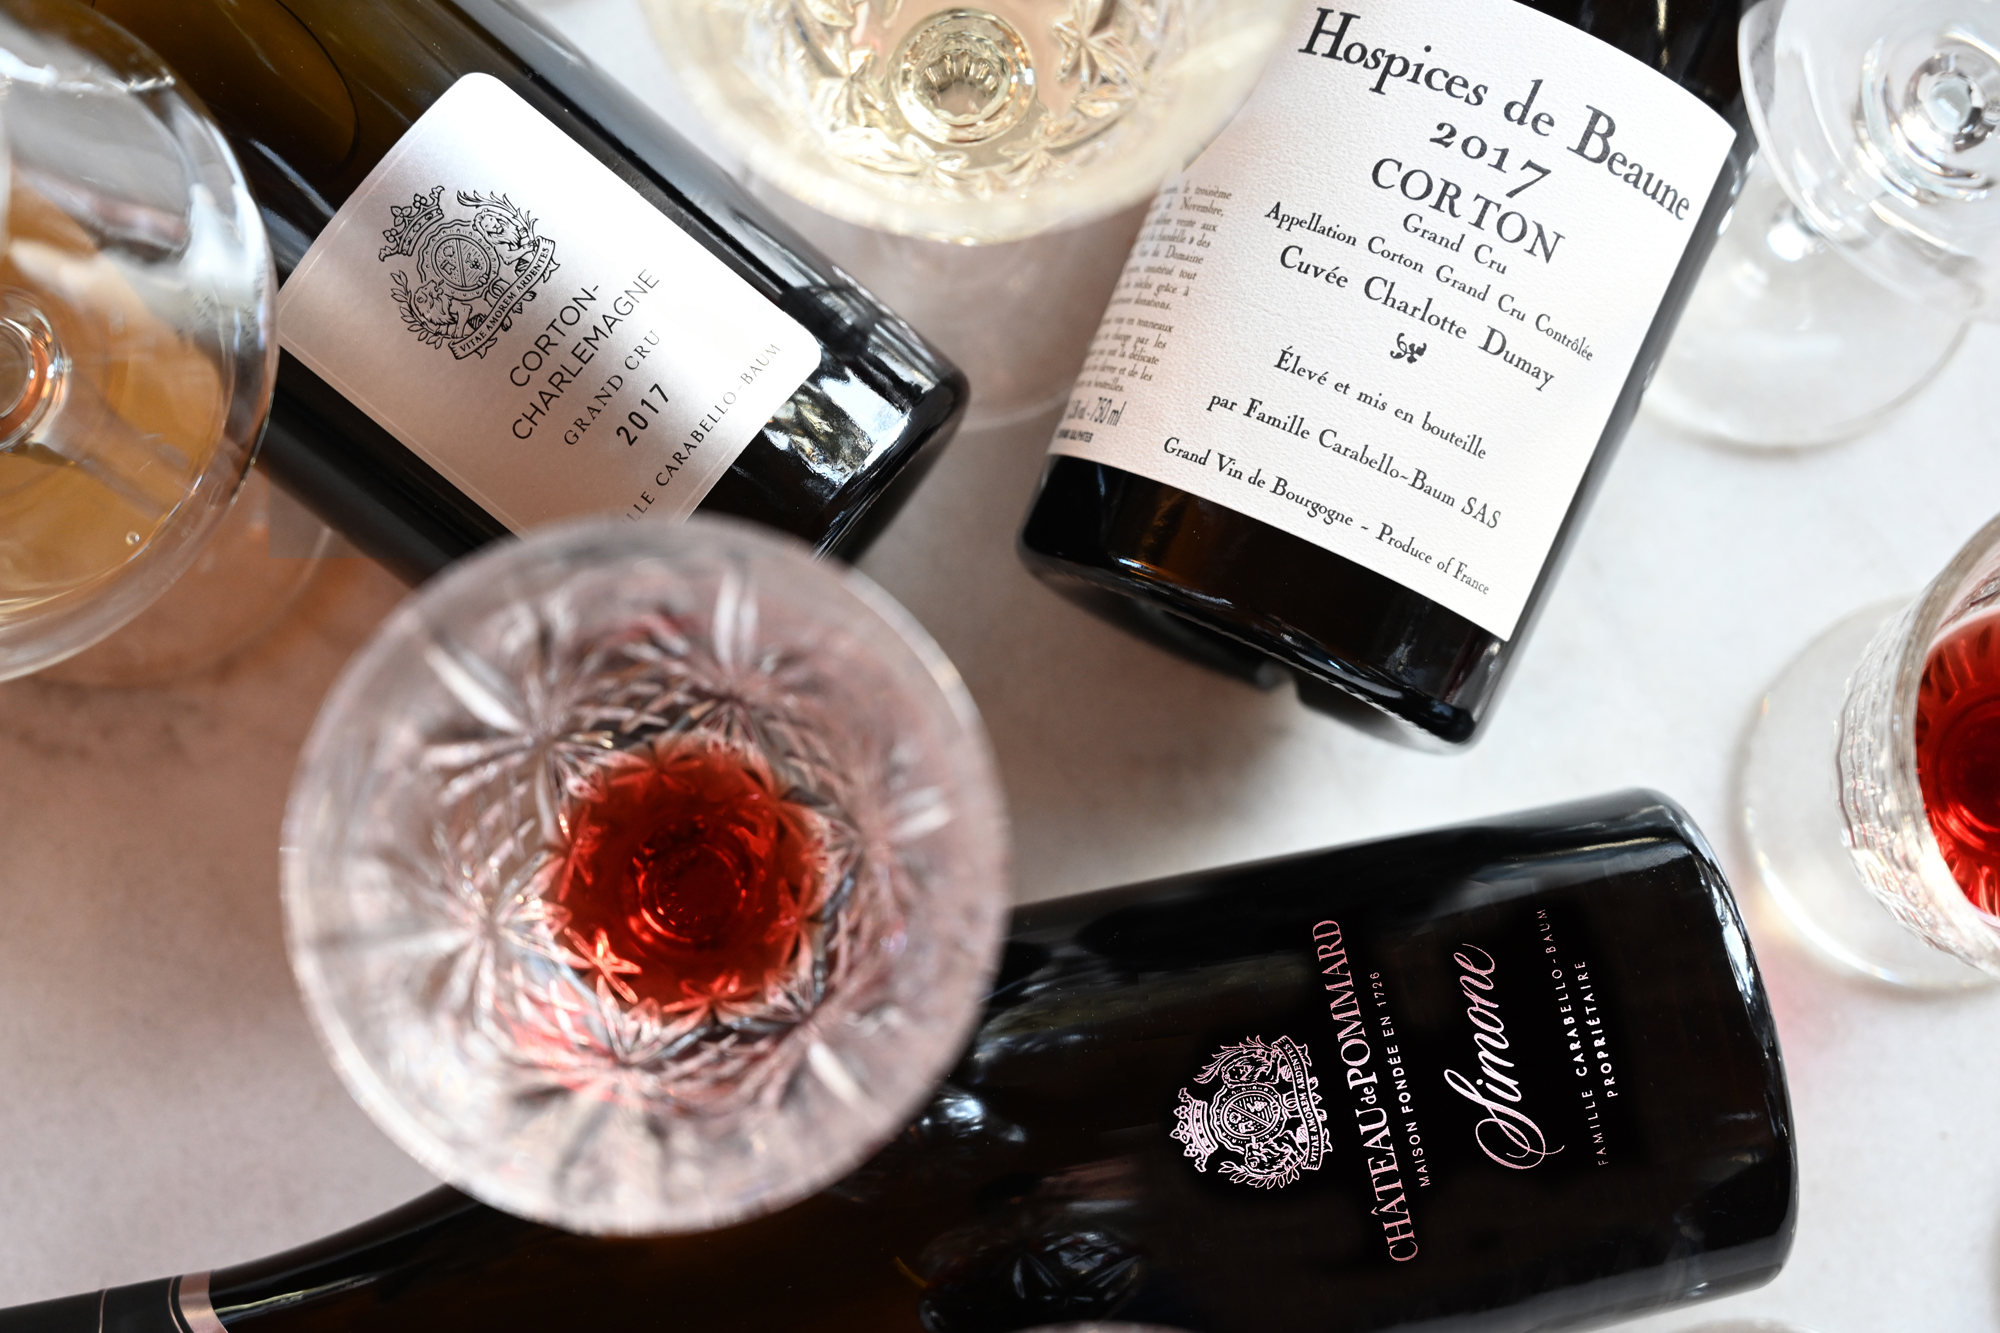 A Taste of the Exceptional, Château de Pommard